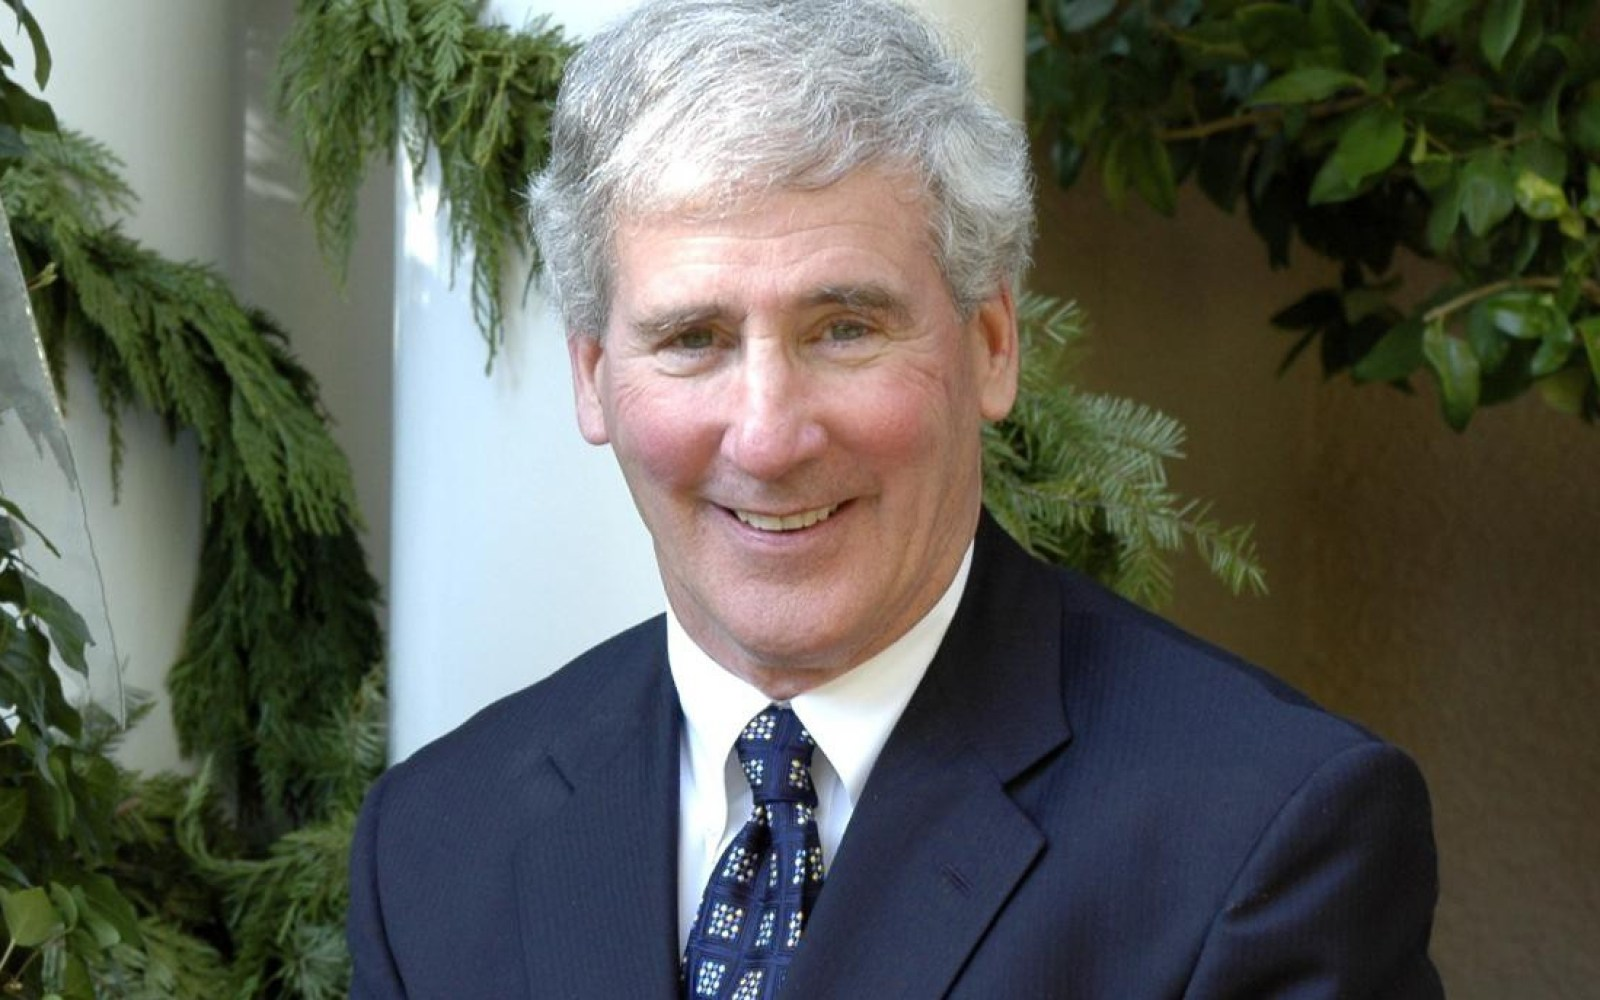 Bill Campbell interview sheds light on his time at Apple, Steve Jobs, and more